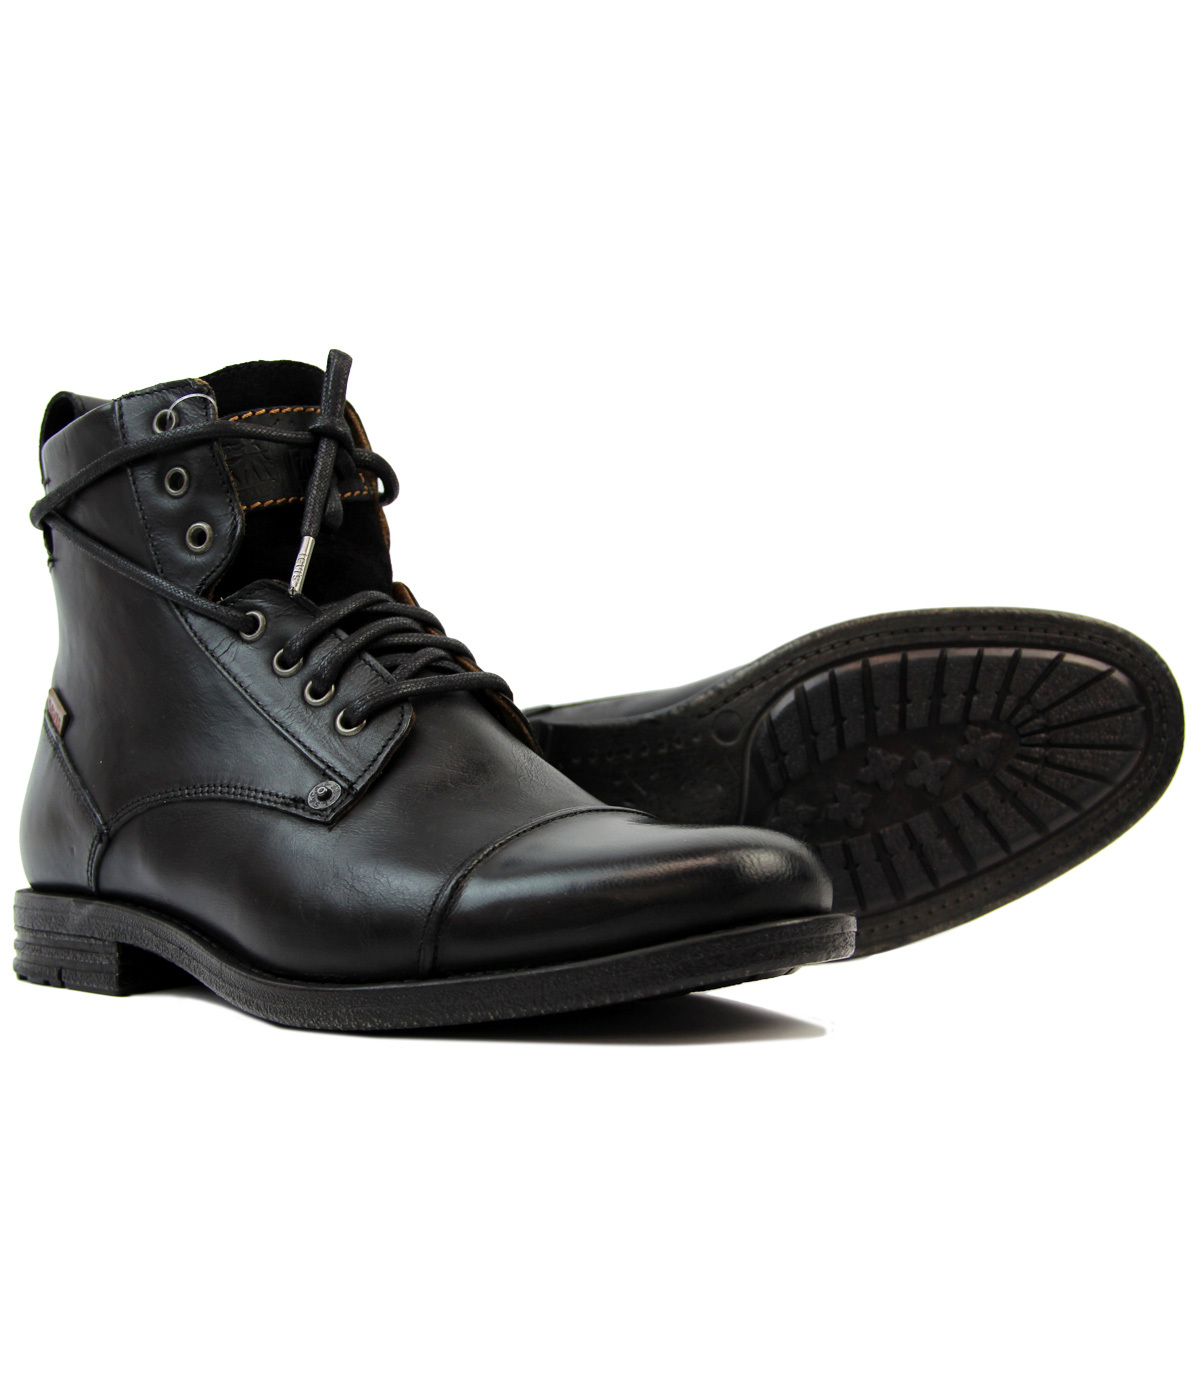 a77c883d31a Emmerson LEVI'S® Retro Mod Leather Military Boots